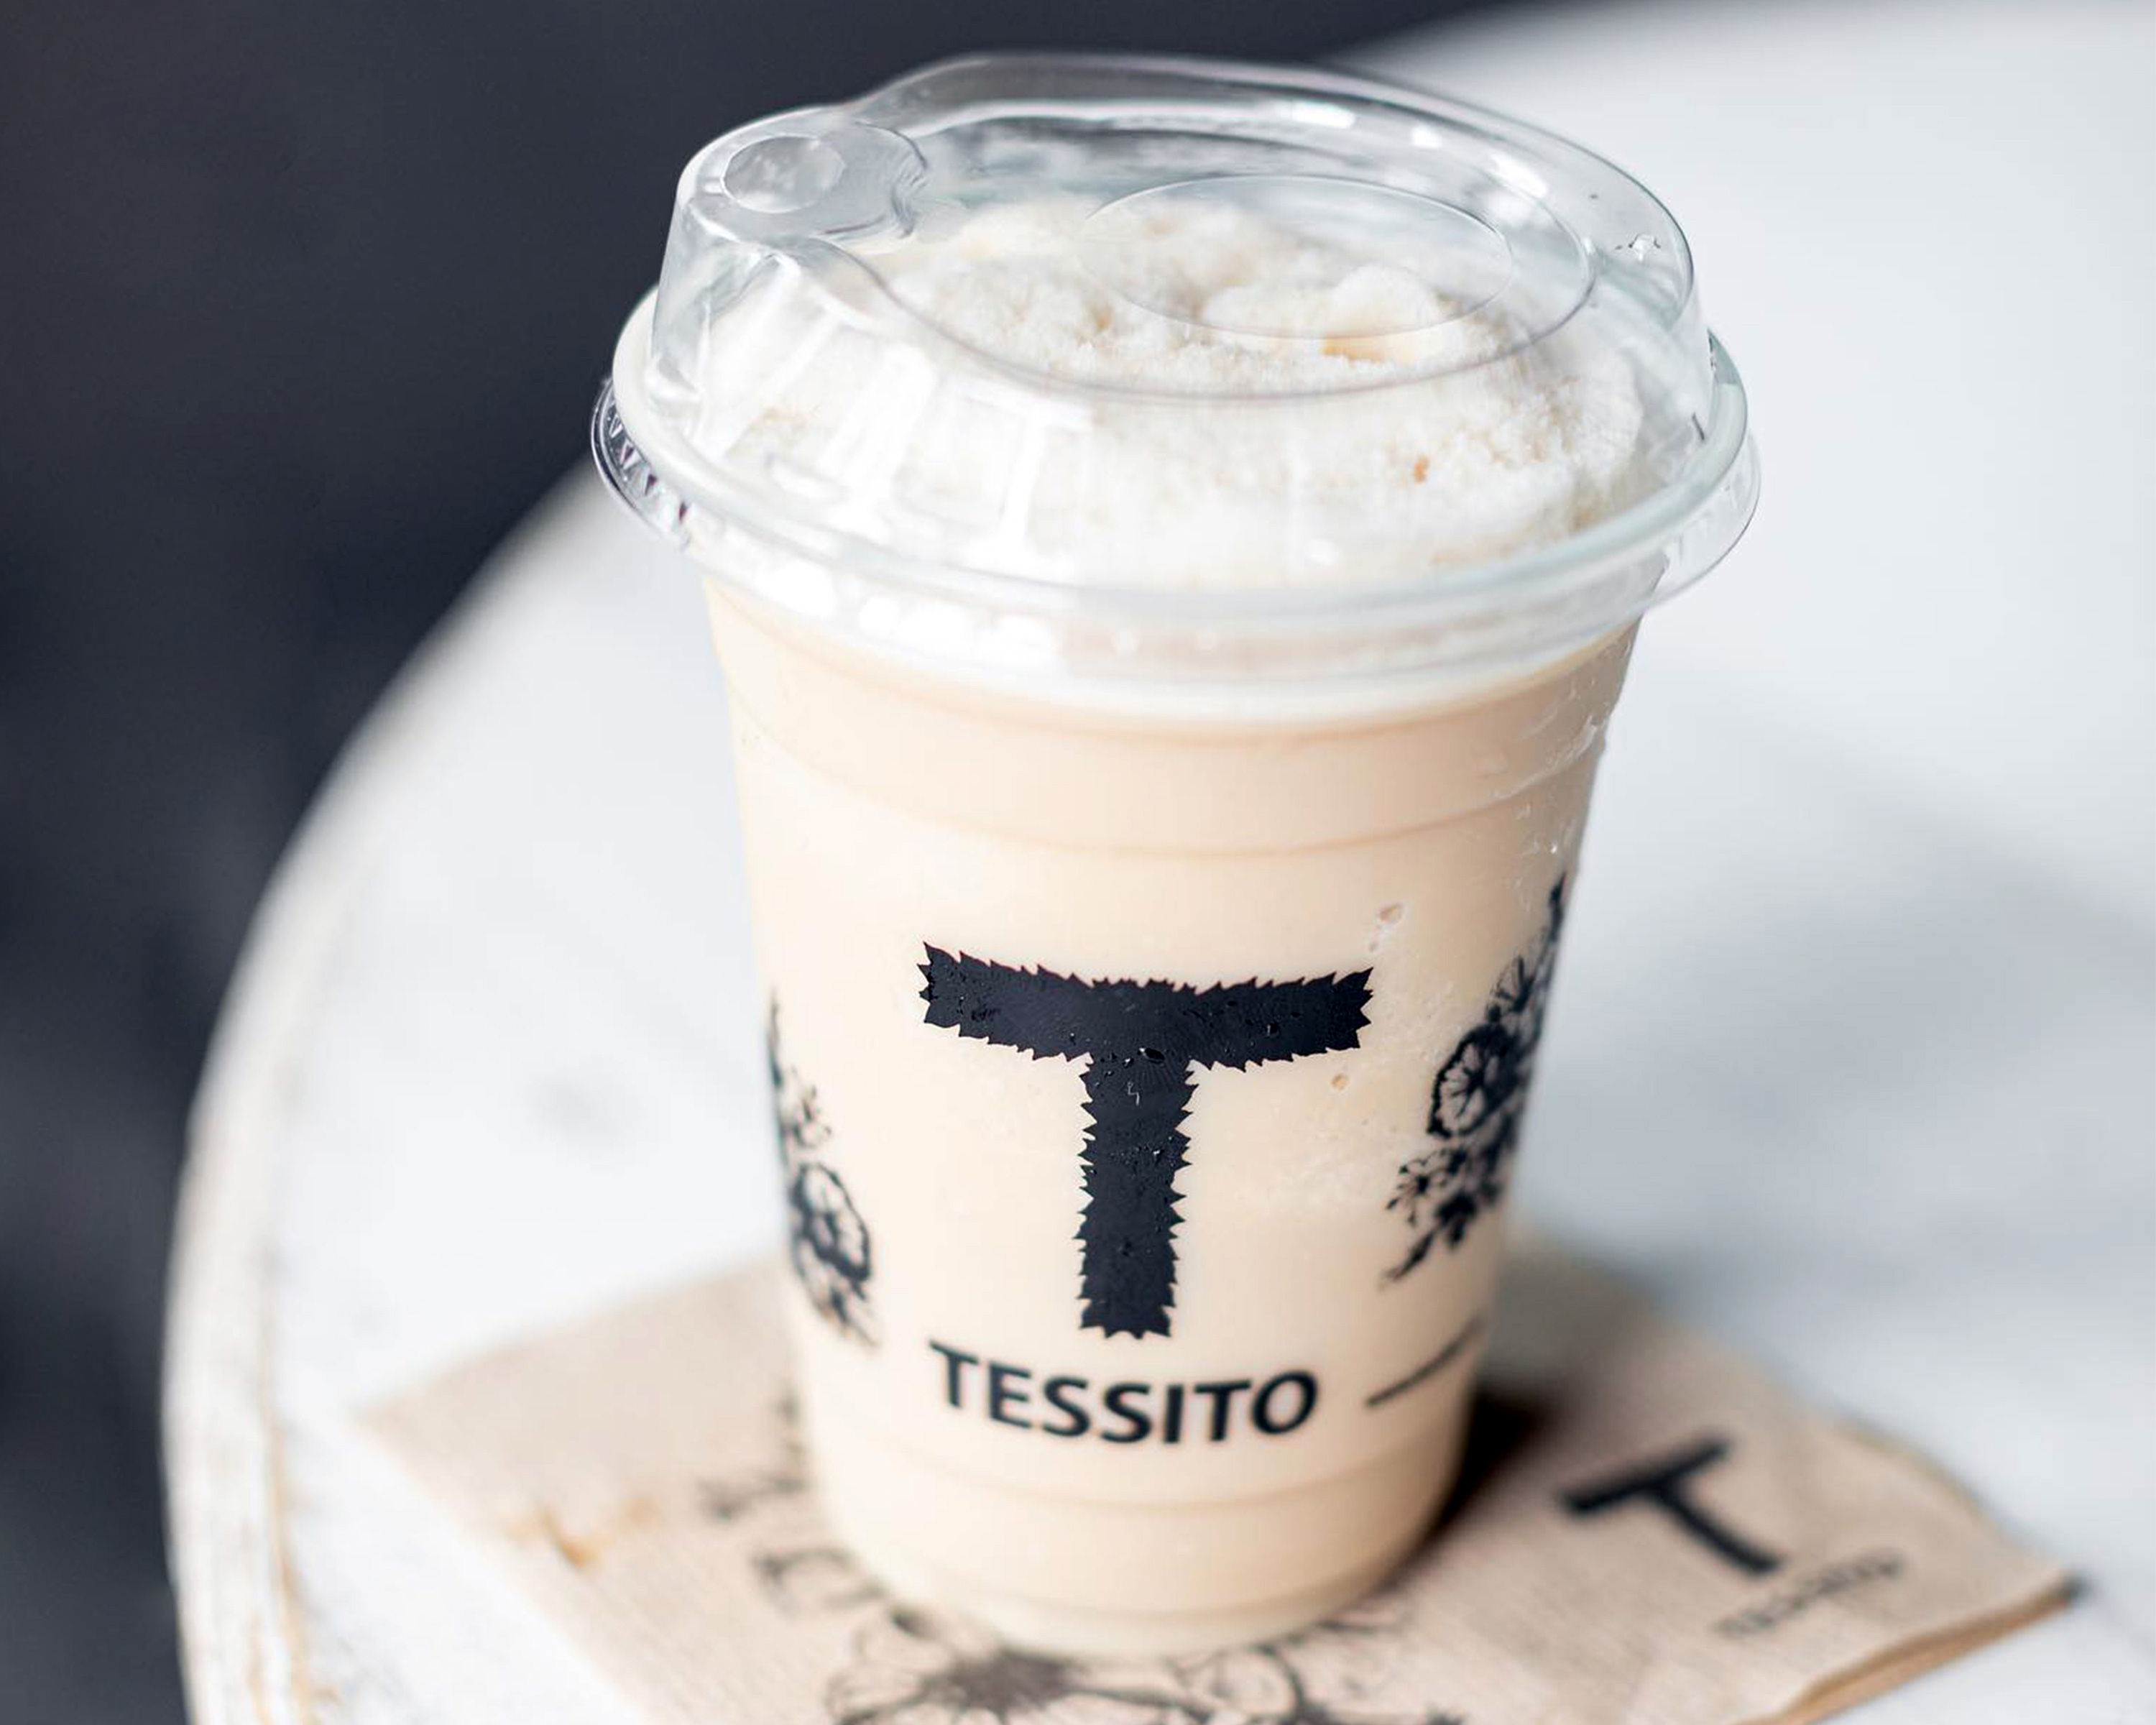 New Brand And Identity For Tessito